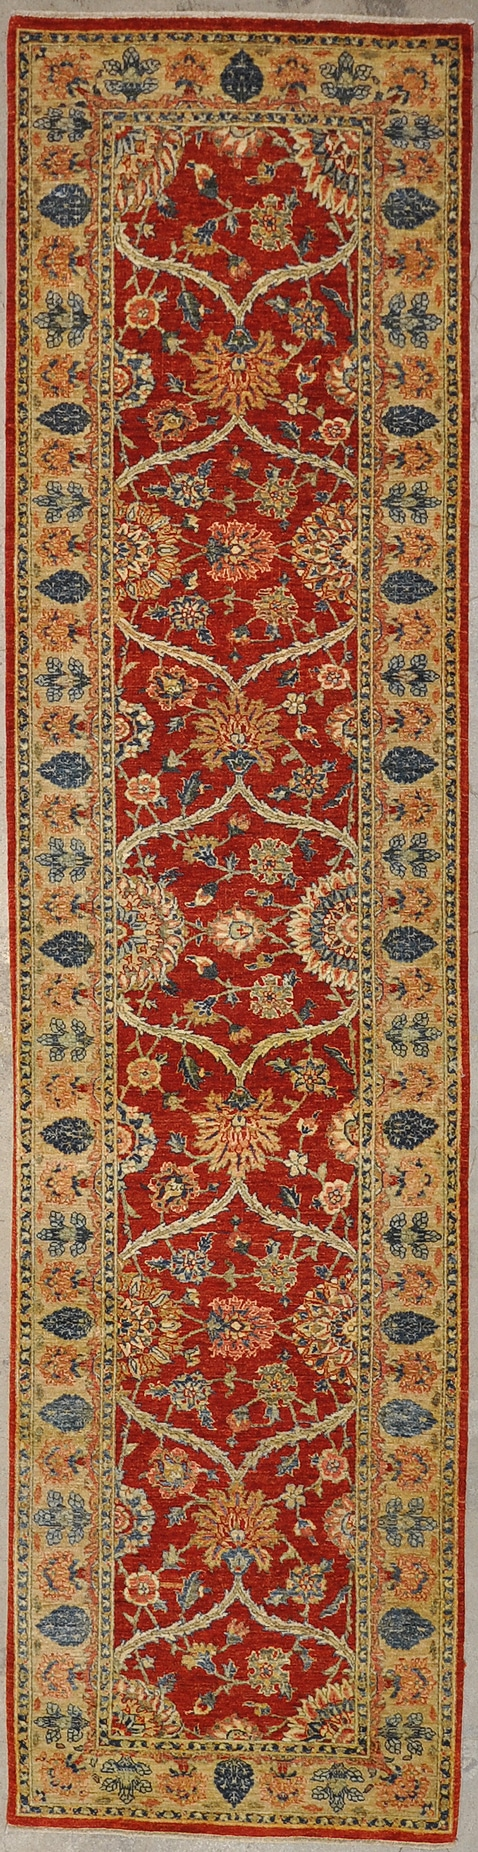 Fine Mughal Runner rugs and more oriental carpet 43986-